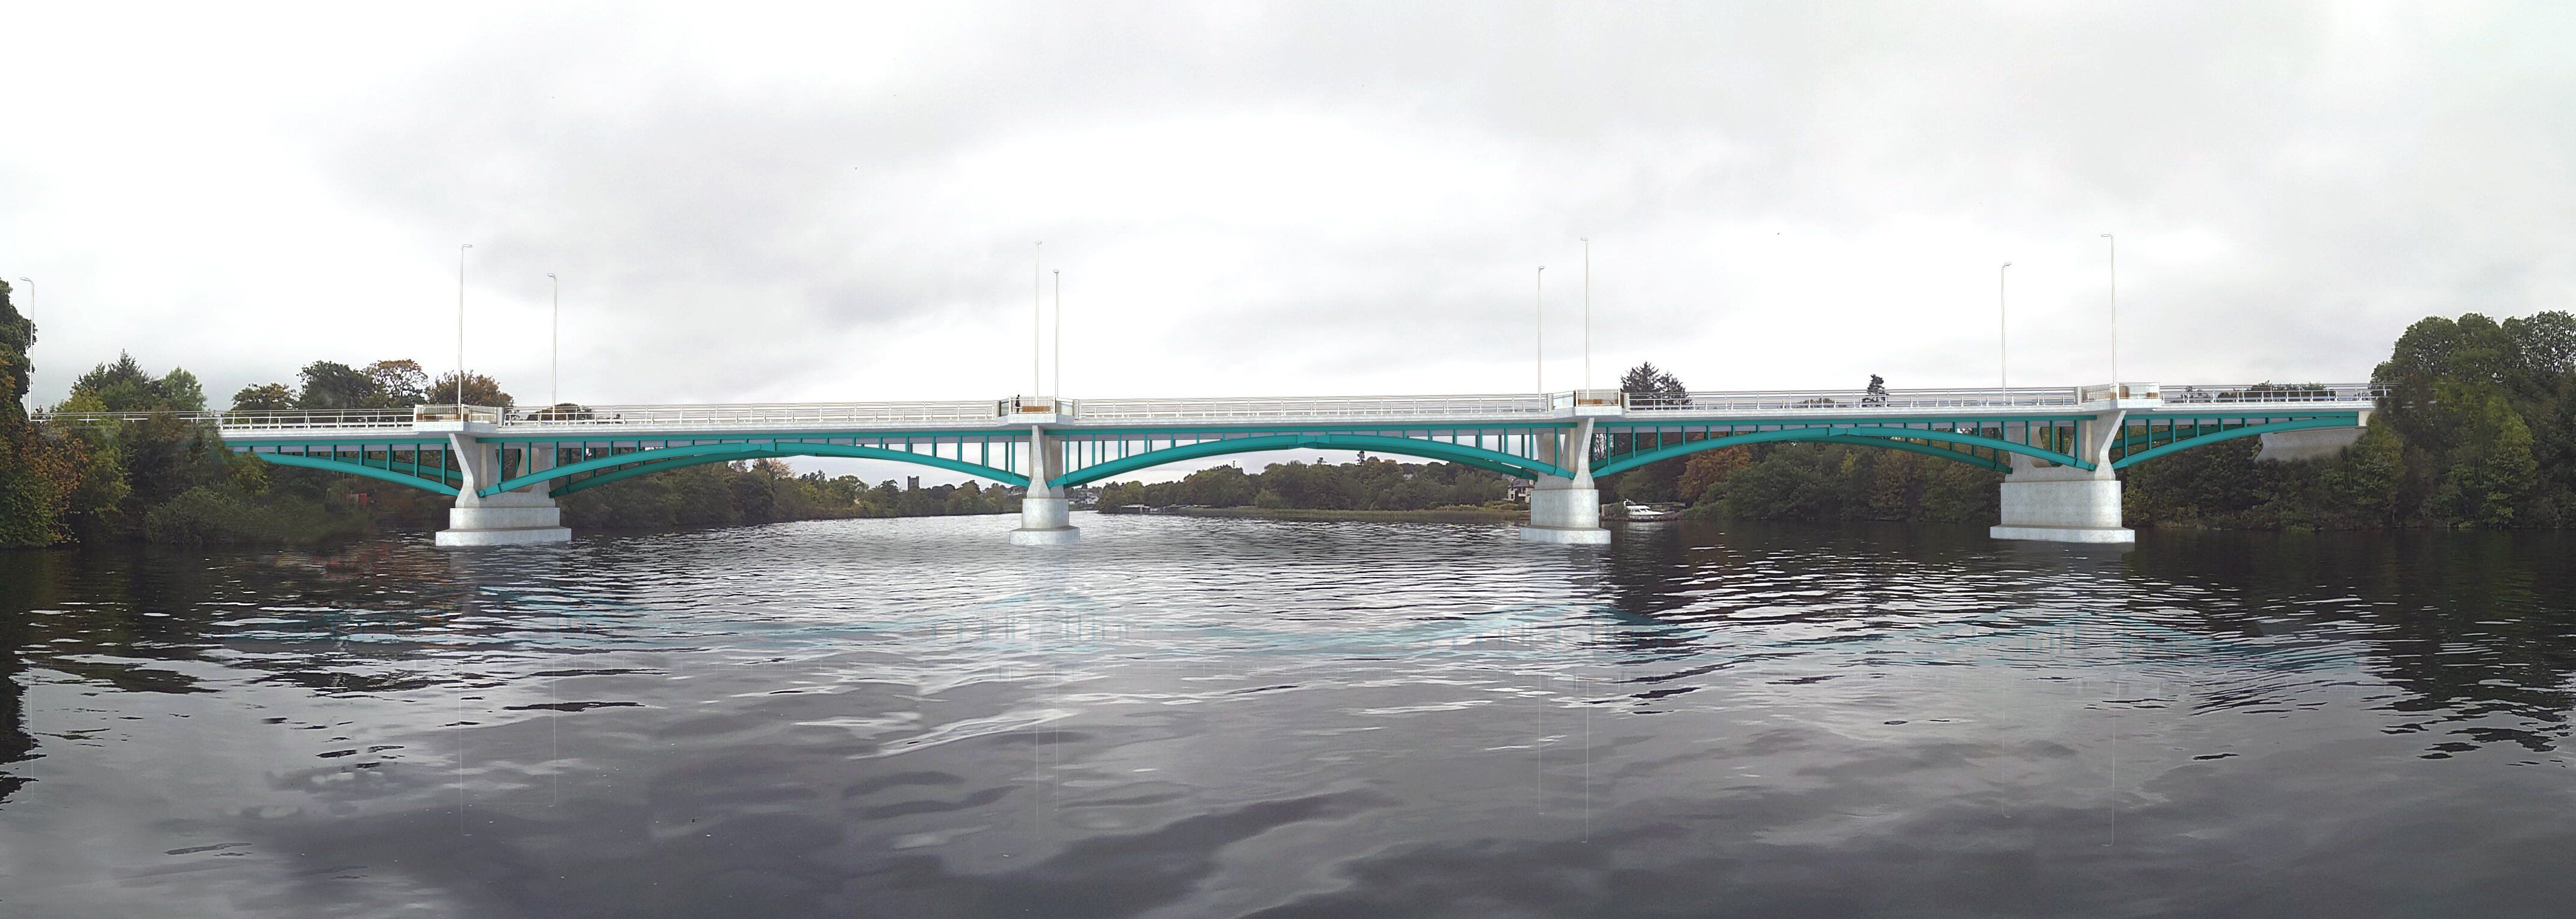 Visualisation of the new bridge crossing of the River Shannon